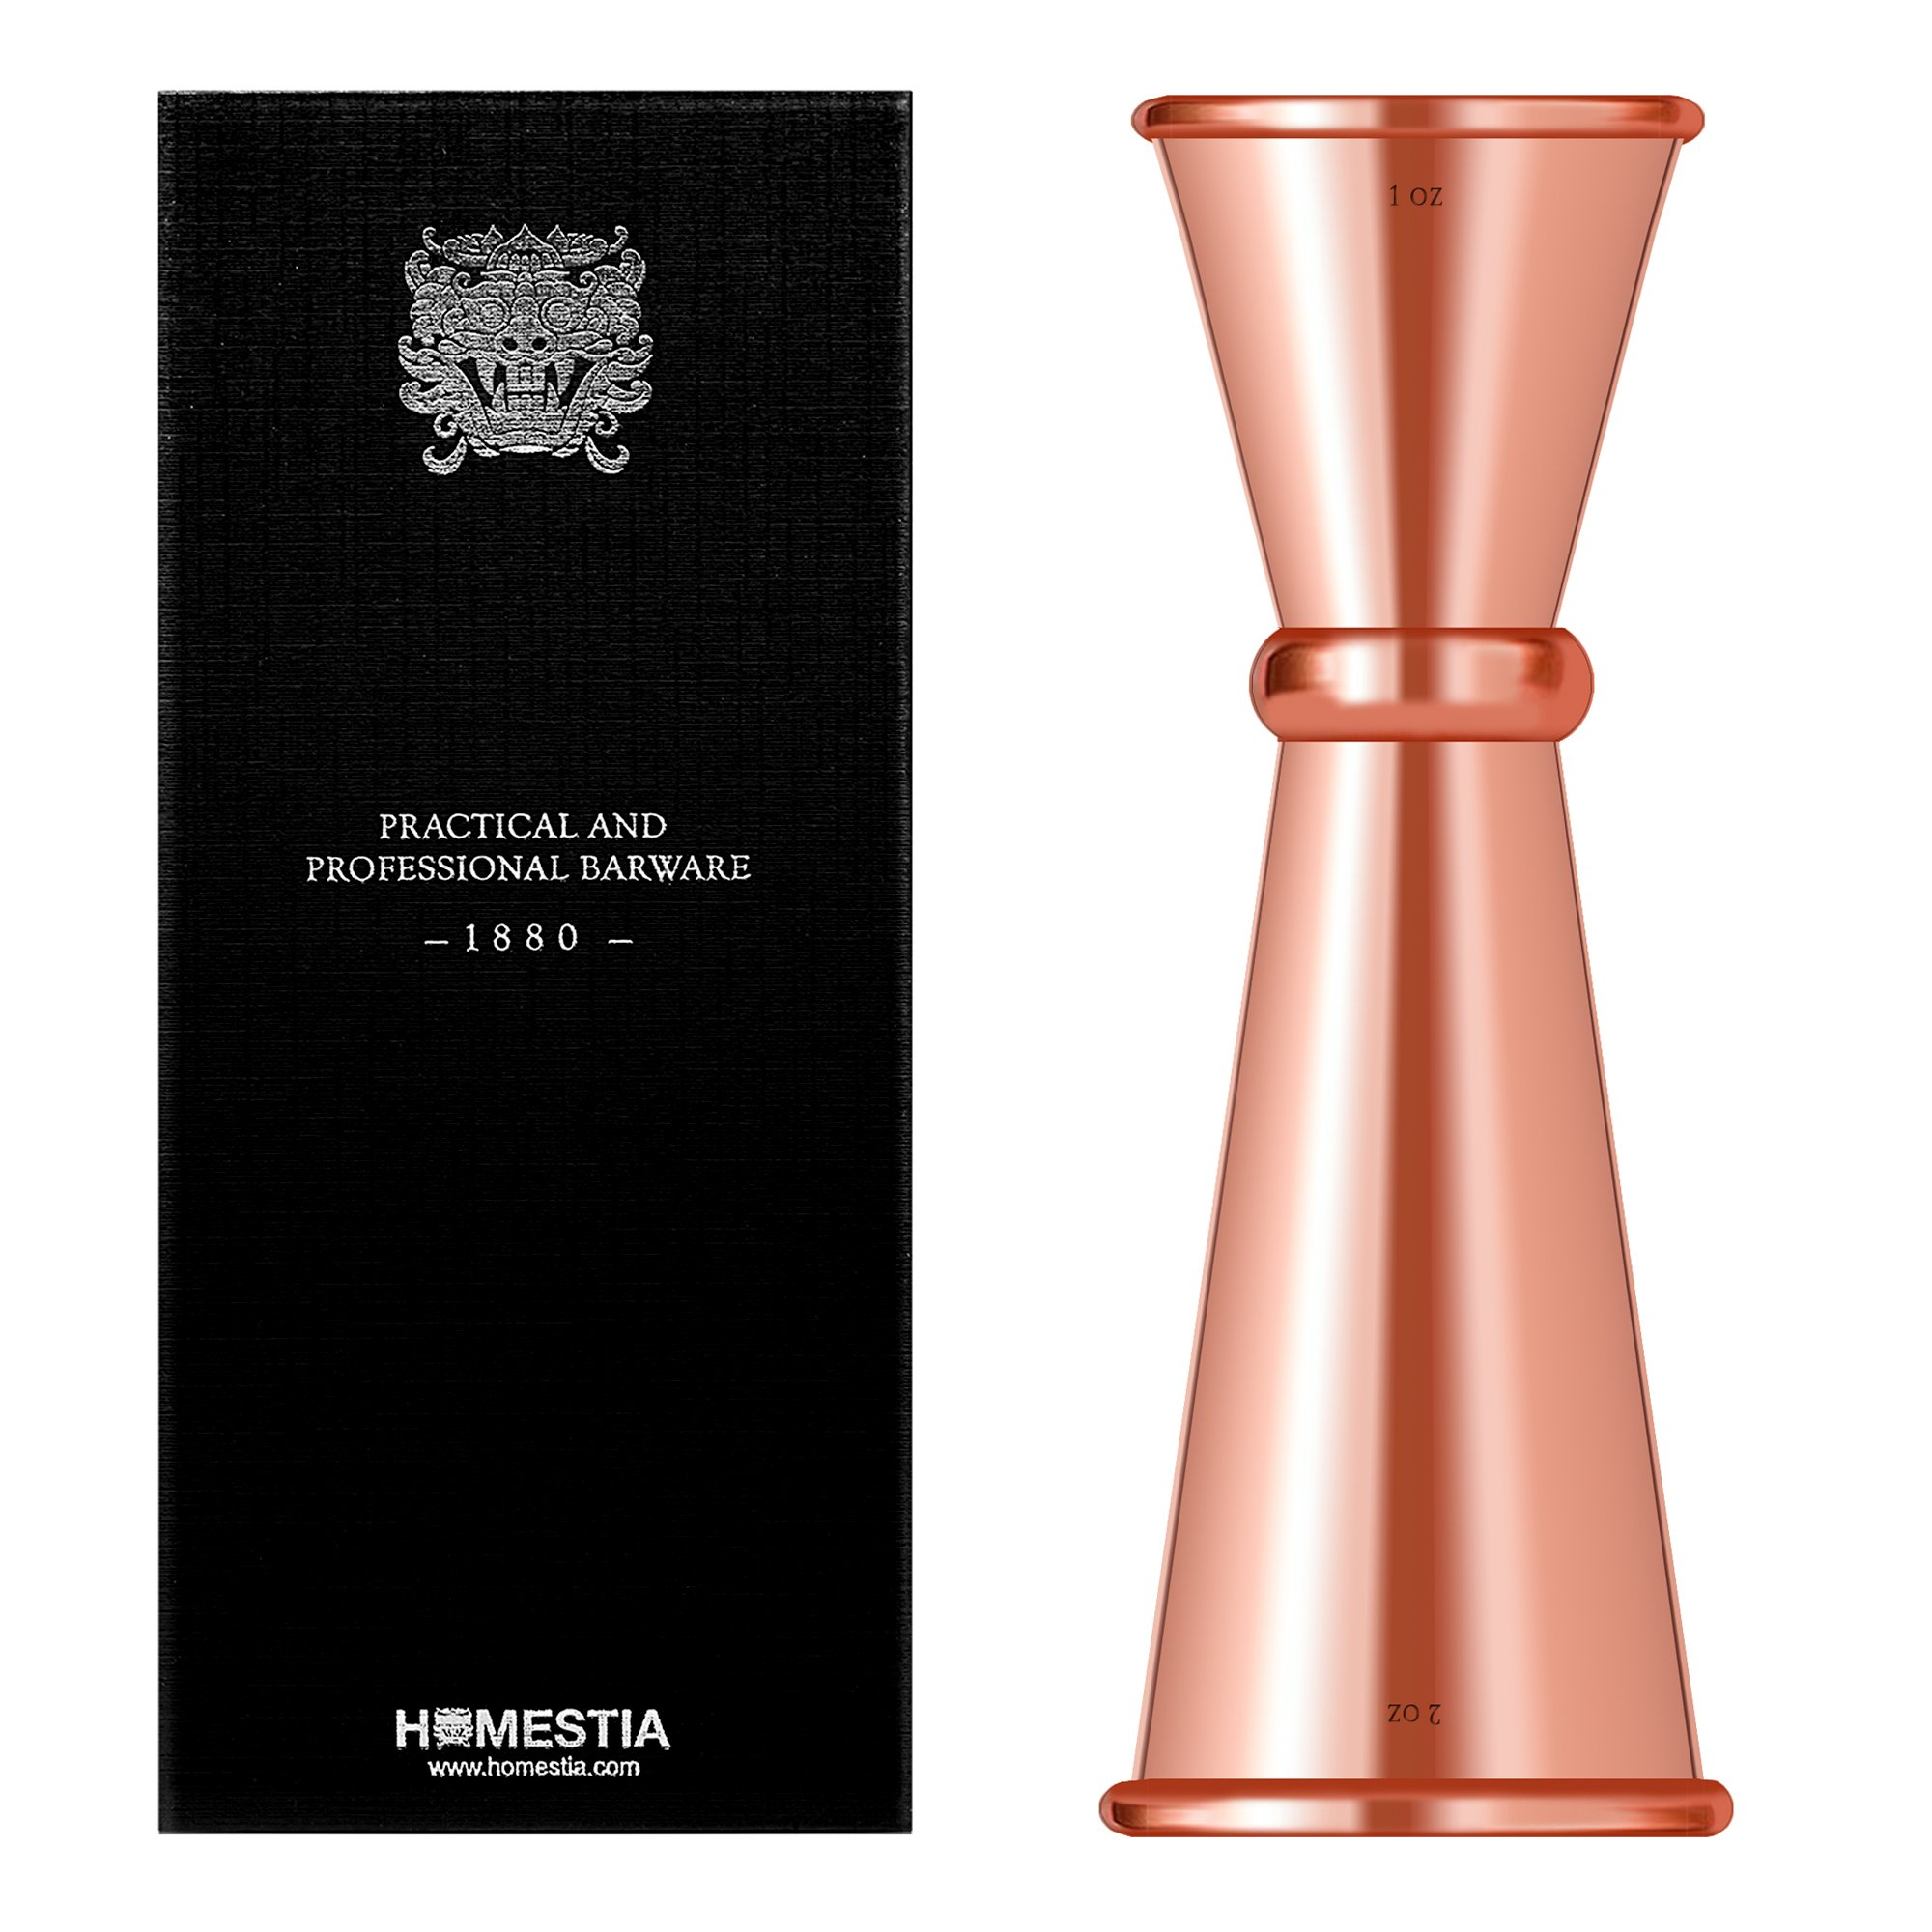 Copper Double Cocktail Jigger Japanese Style Stainless Steel Bar Measuring Jigger 1 & 2 oz by Homestia